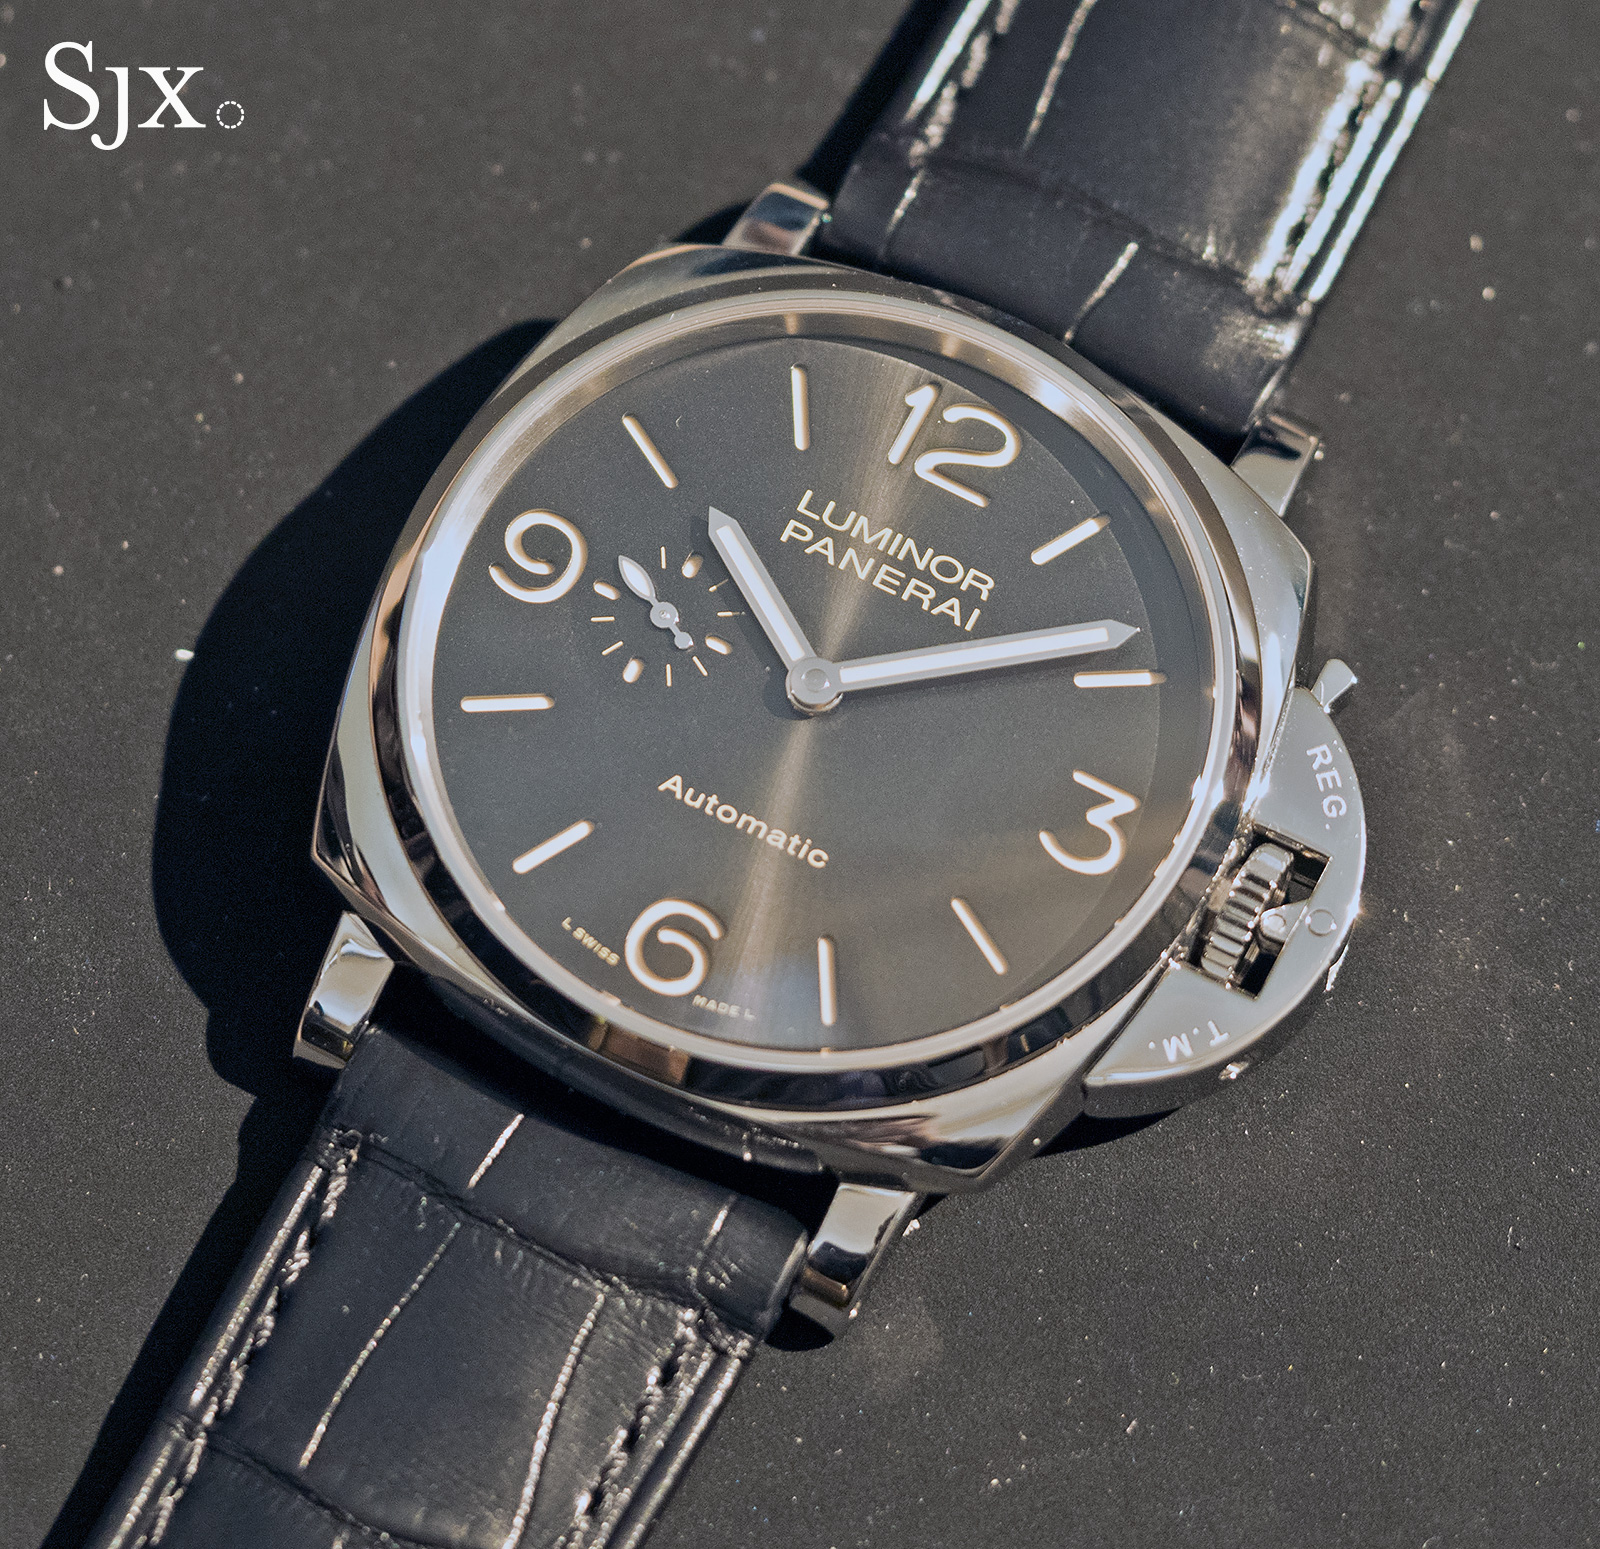 Panerai Luminor Due Steel Automatic 45mm PAM674 - 5